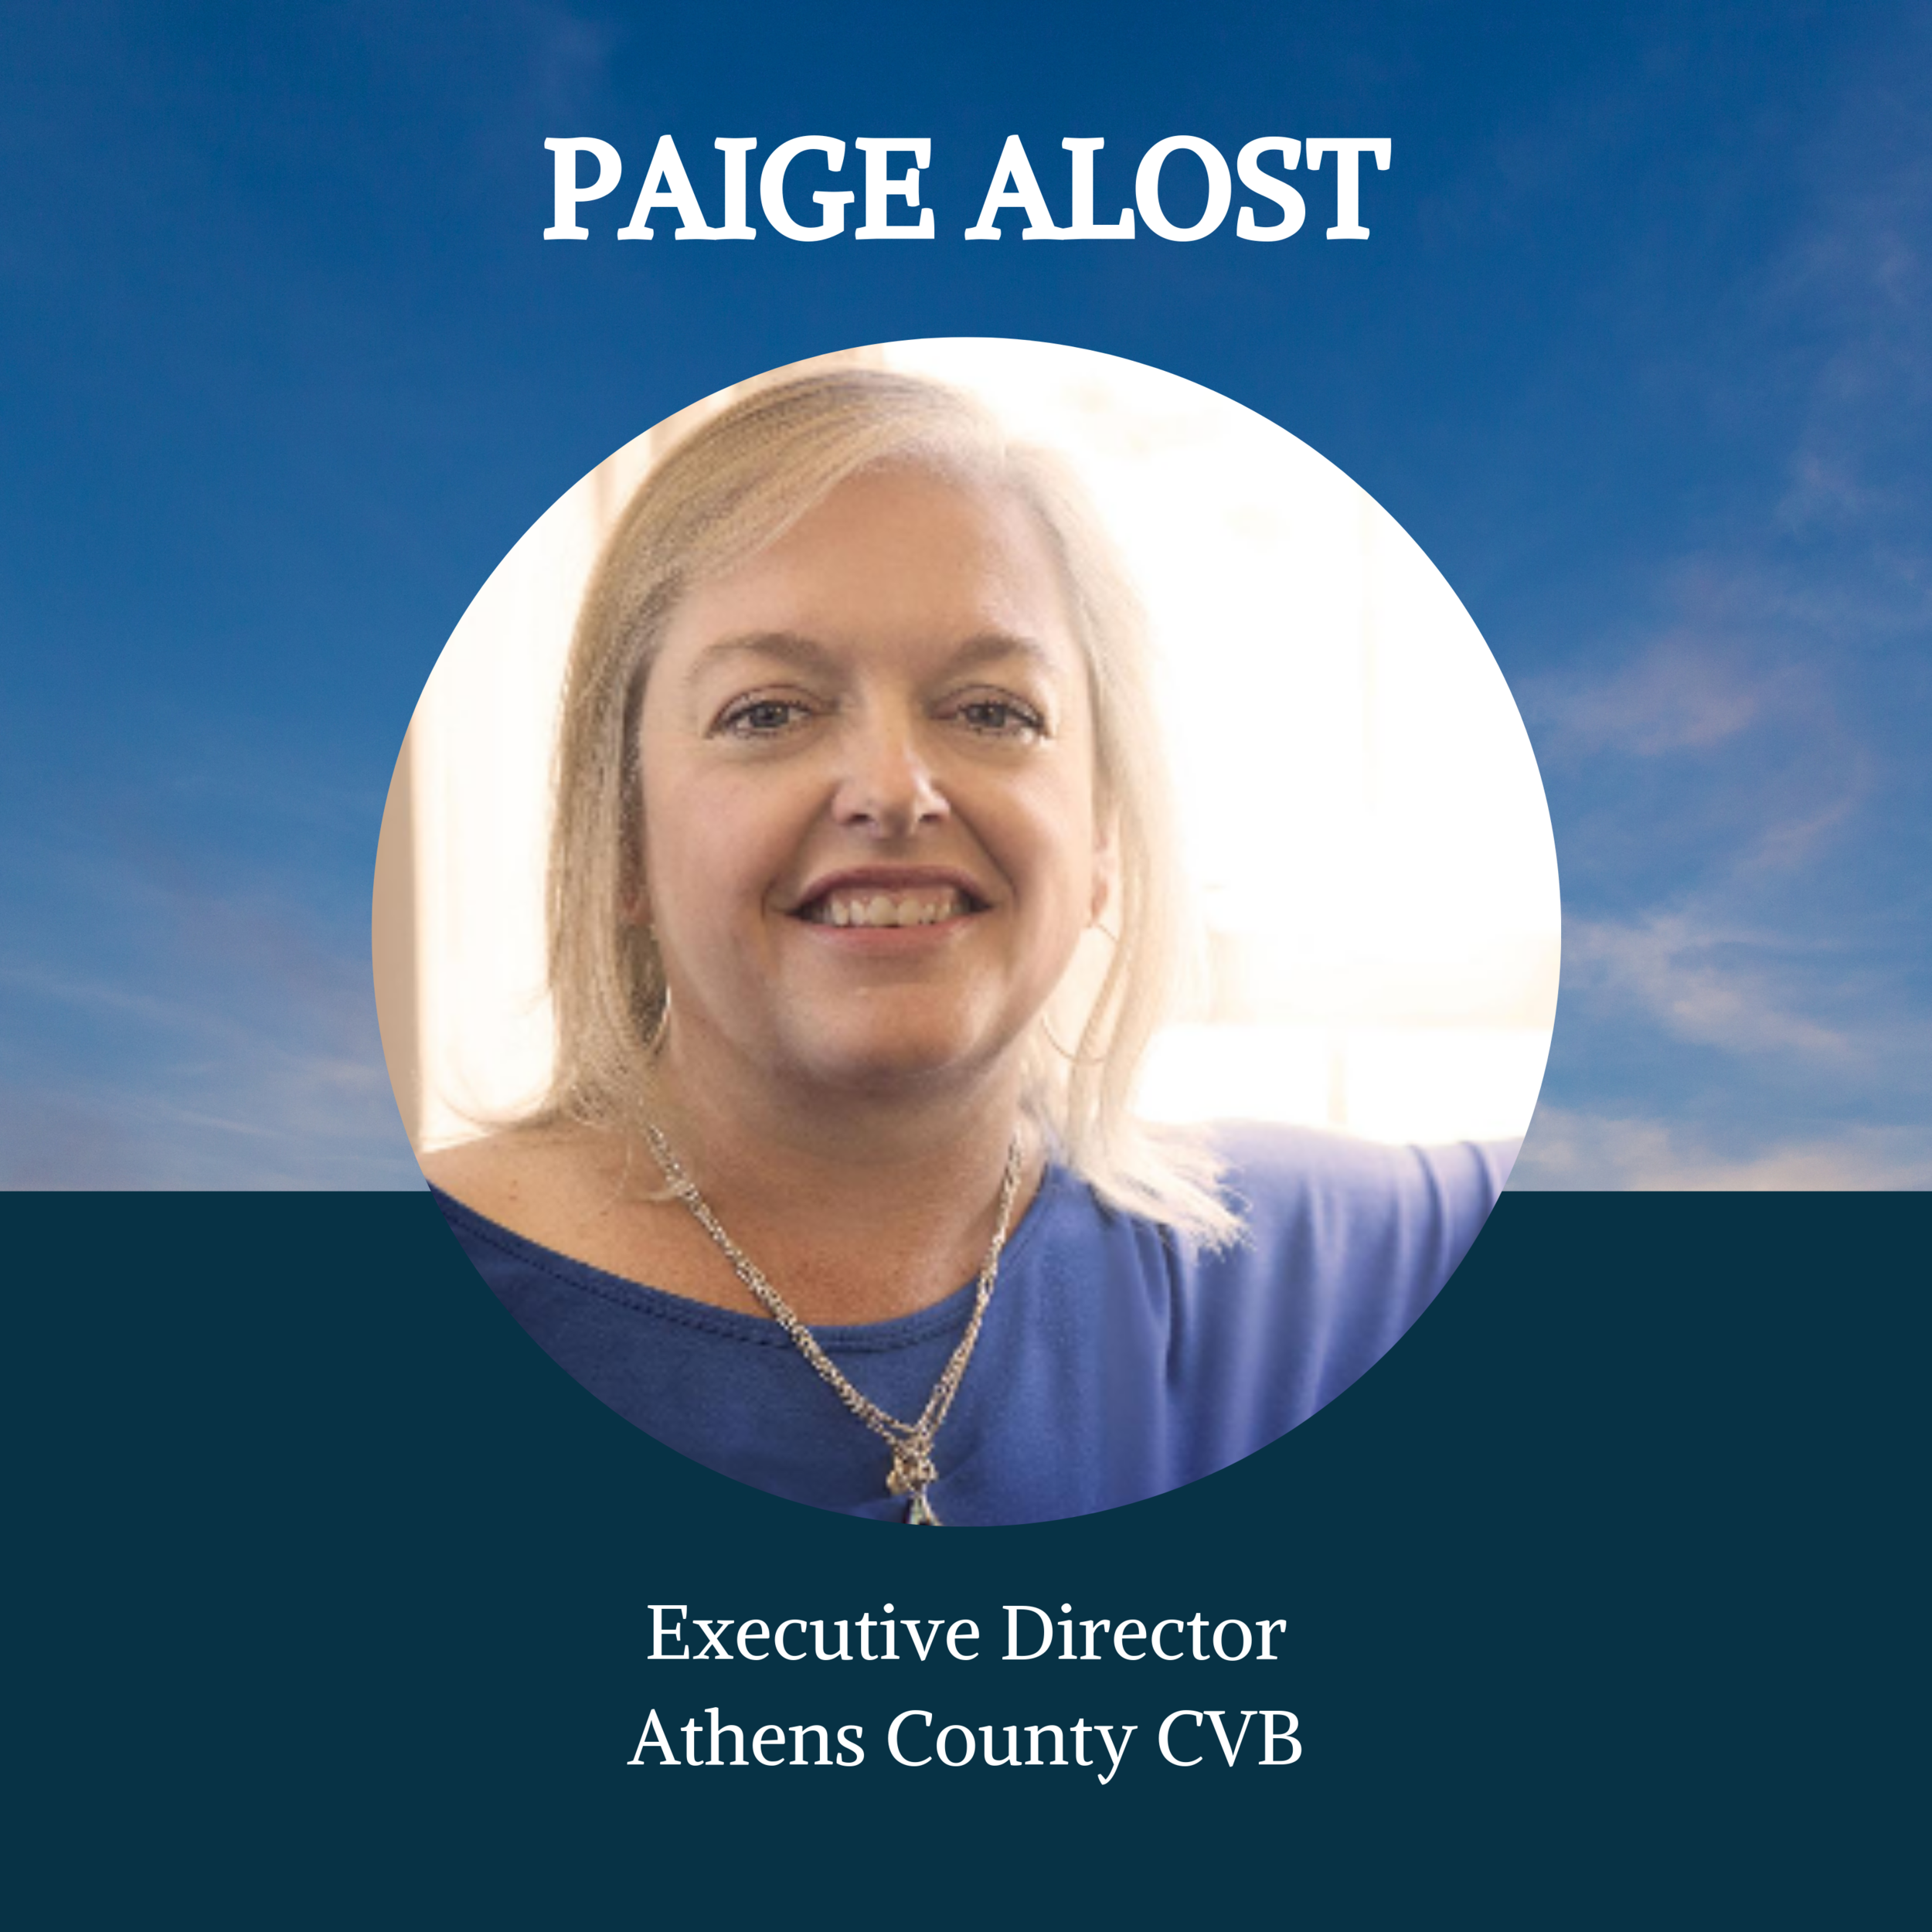 Paige Alost has served as the Executive Director of the Athens County Convention and Visitors Bureau for the past 13 years. During her time at the Bureau she has also served as the Ohio Representative to the Appalachian Regional Commission's Tourism Council and is currently the Treasurer of the Ohio Travel Association. The past five years in Athens County has brought rapid growth in the unique lodging industry, capitalizing on the needs of Ohio University peak weekends and growth in both the outdoor recreation and craft brewing industries. Alost is proud to be a part of a progressive community that seeks to balance tourism growth with new business opportunities for local residents. Originally from Baton Rouge, LA, Alost has called Ohio home for 20 years.